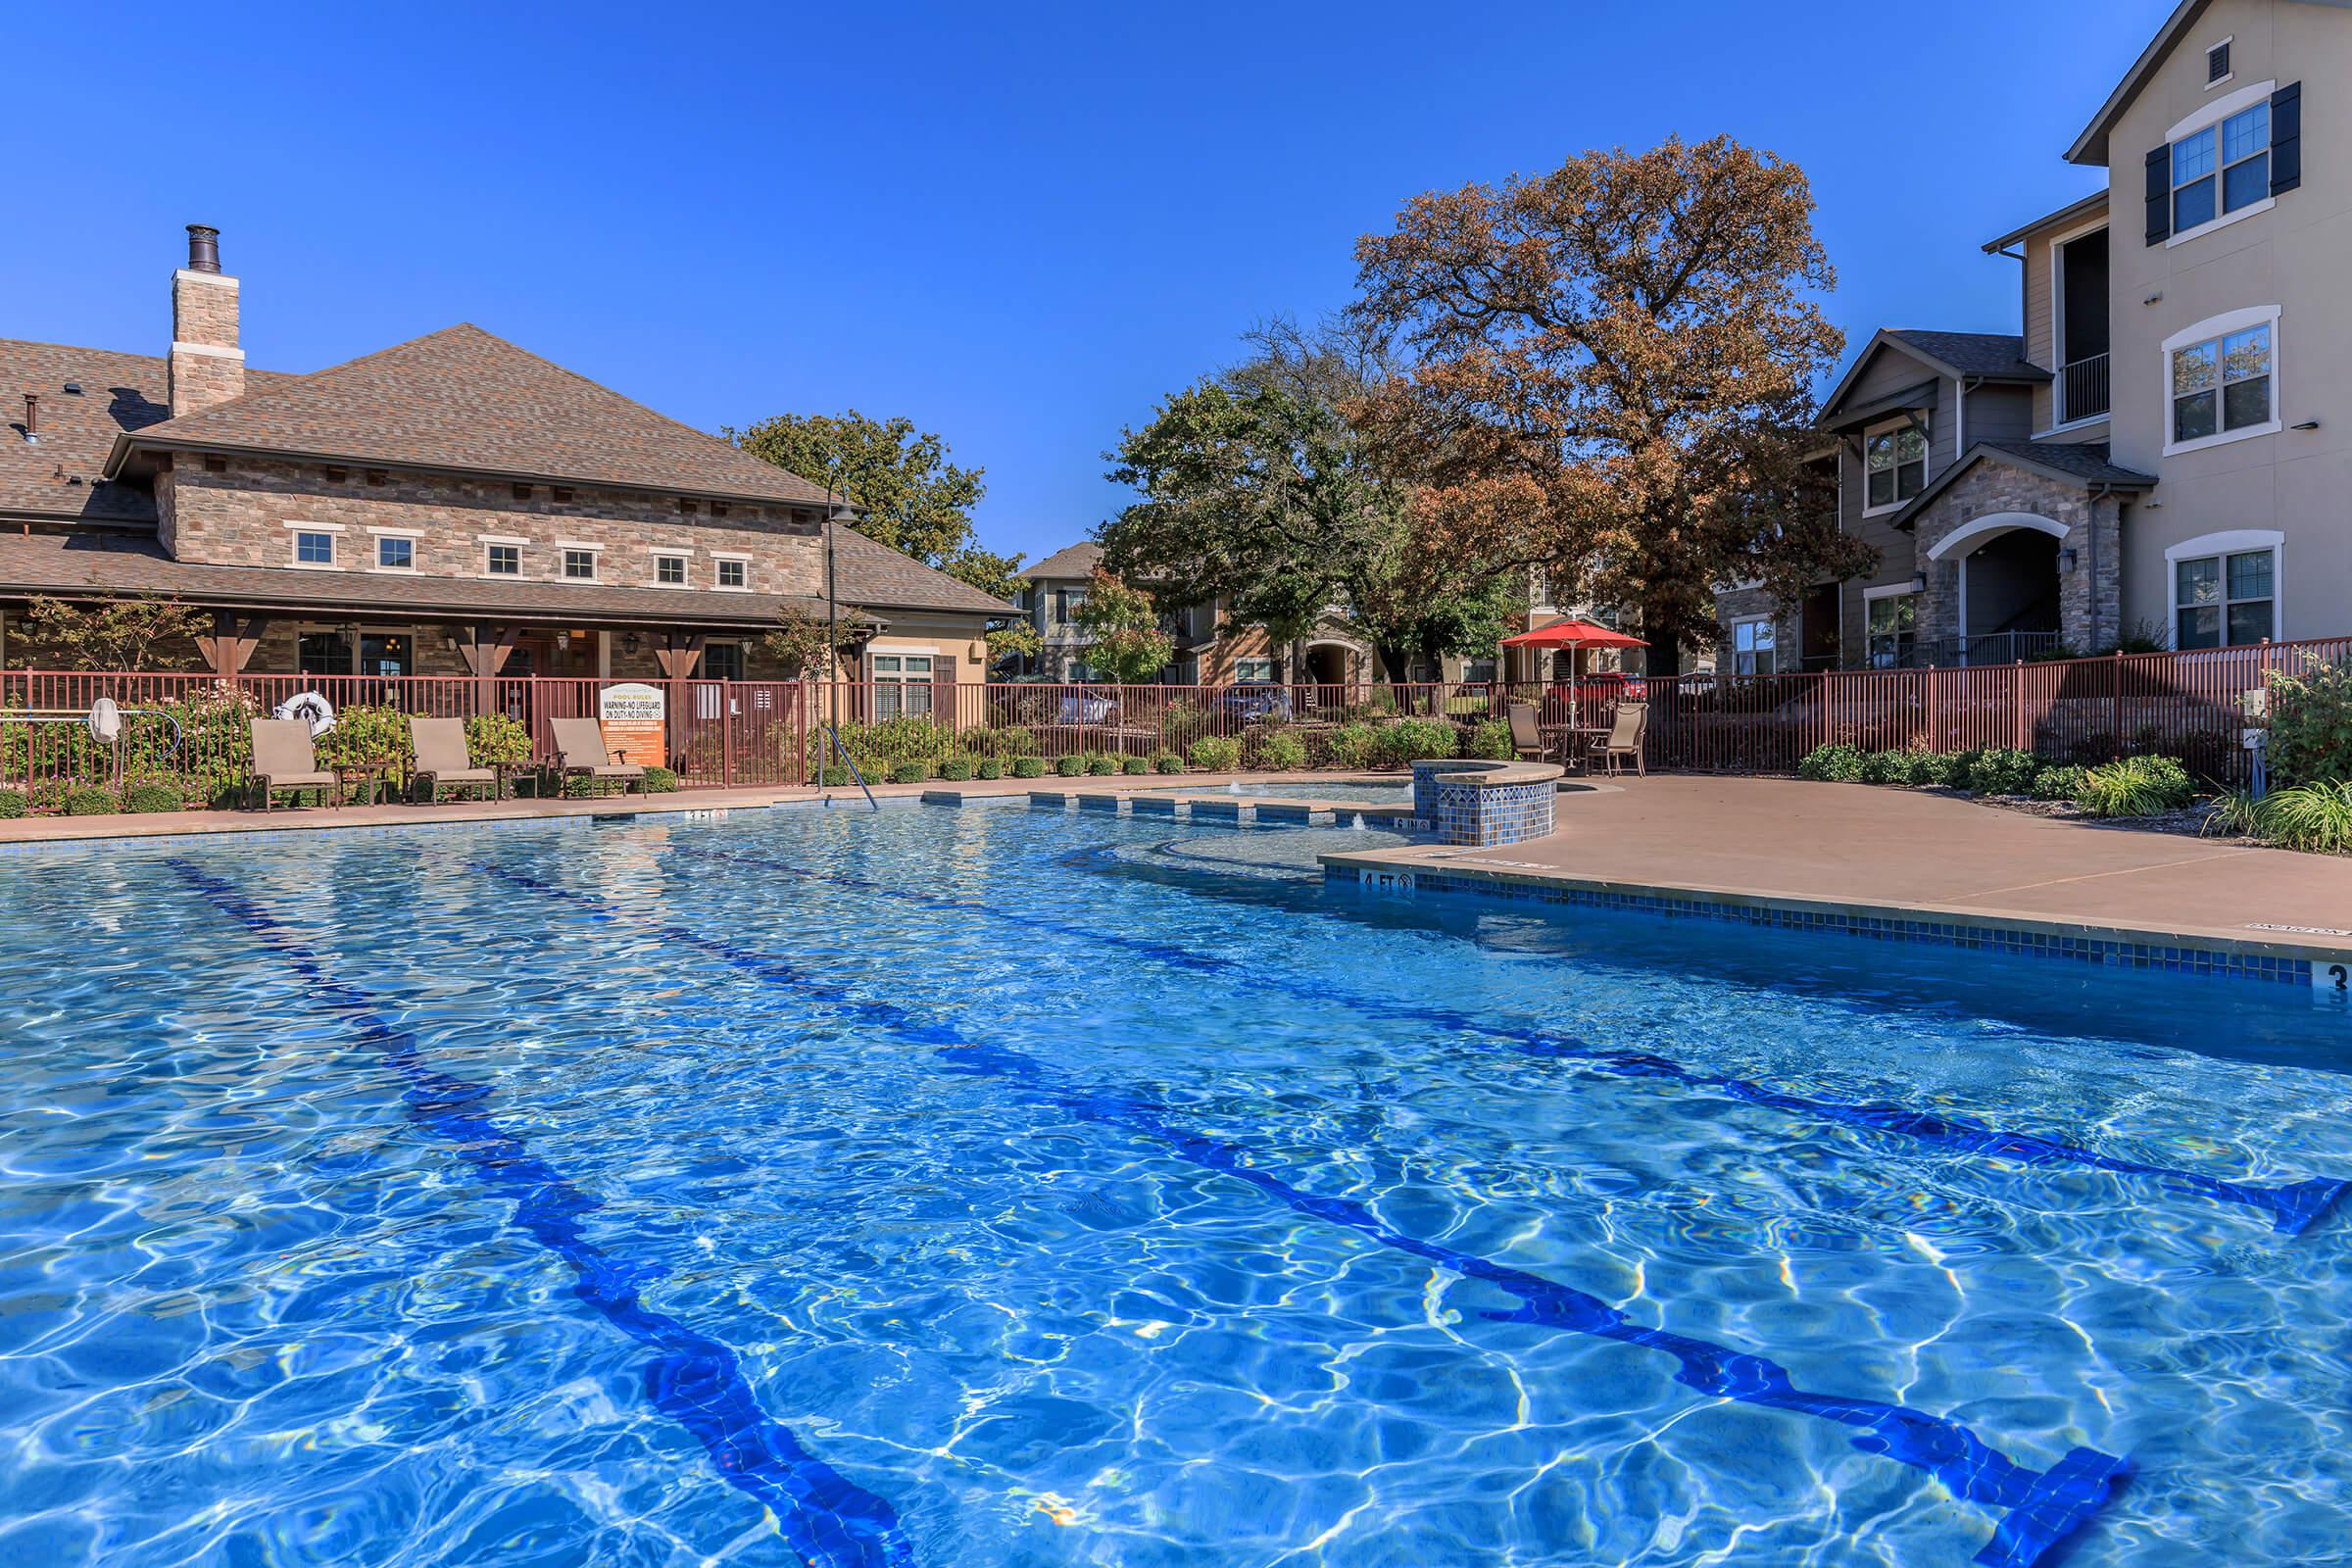 a house with a large pool of water